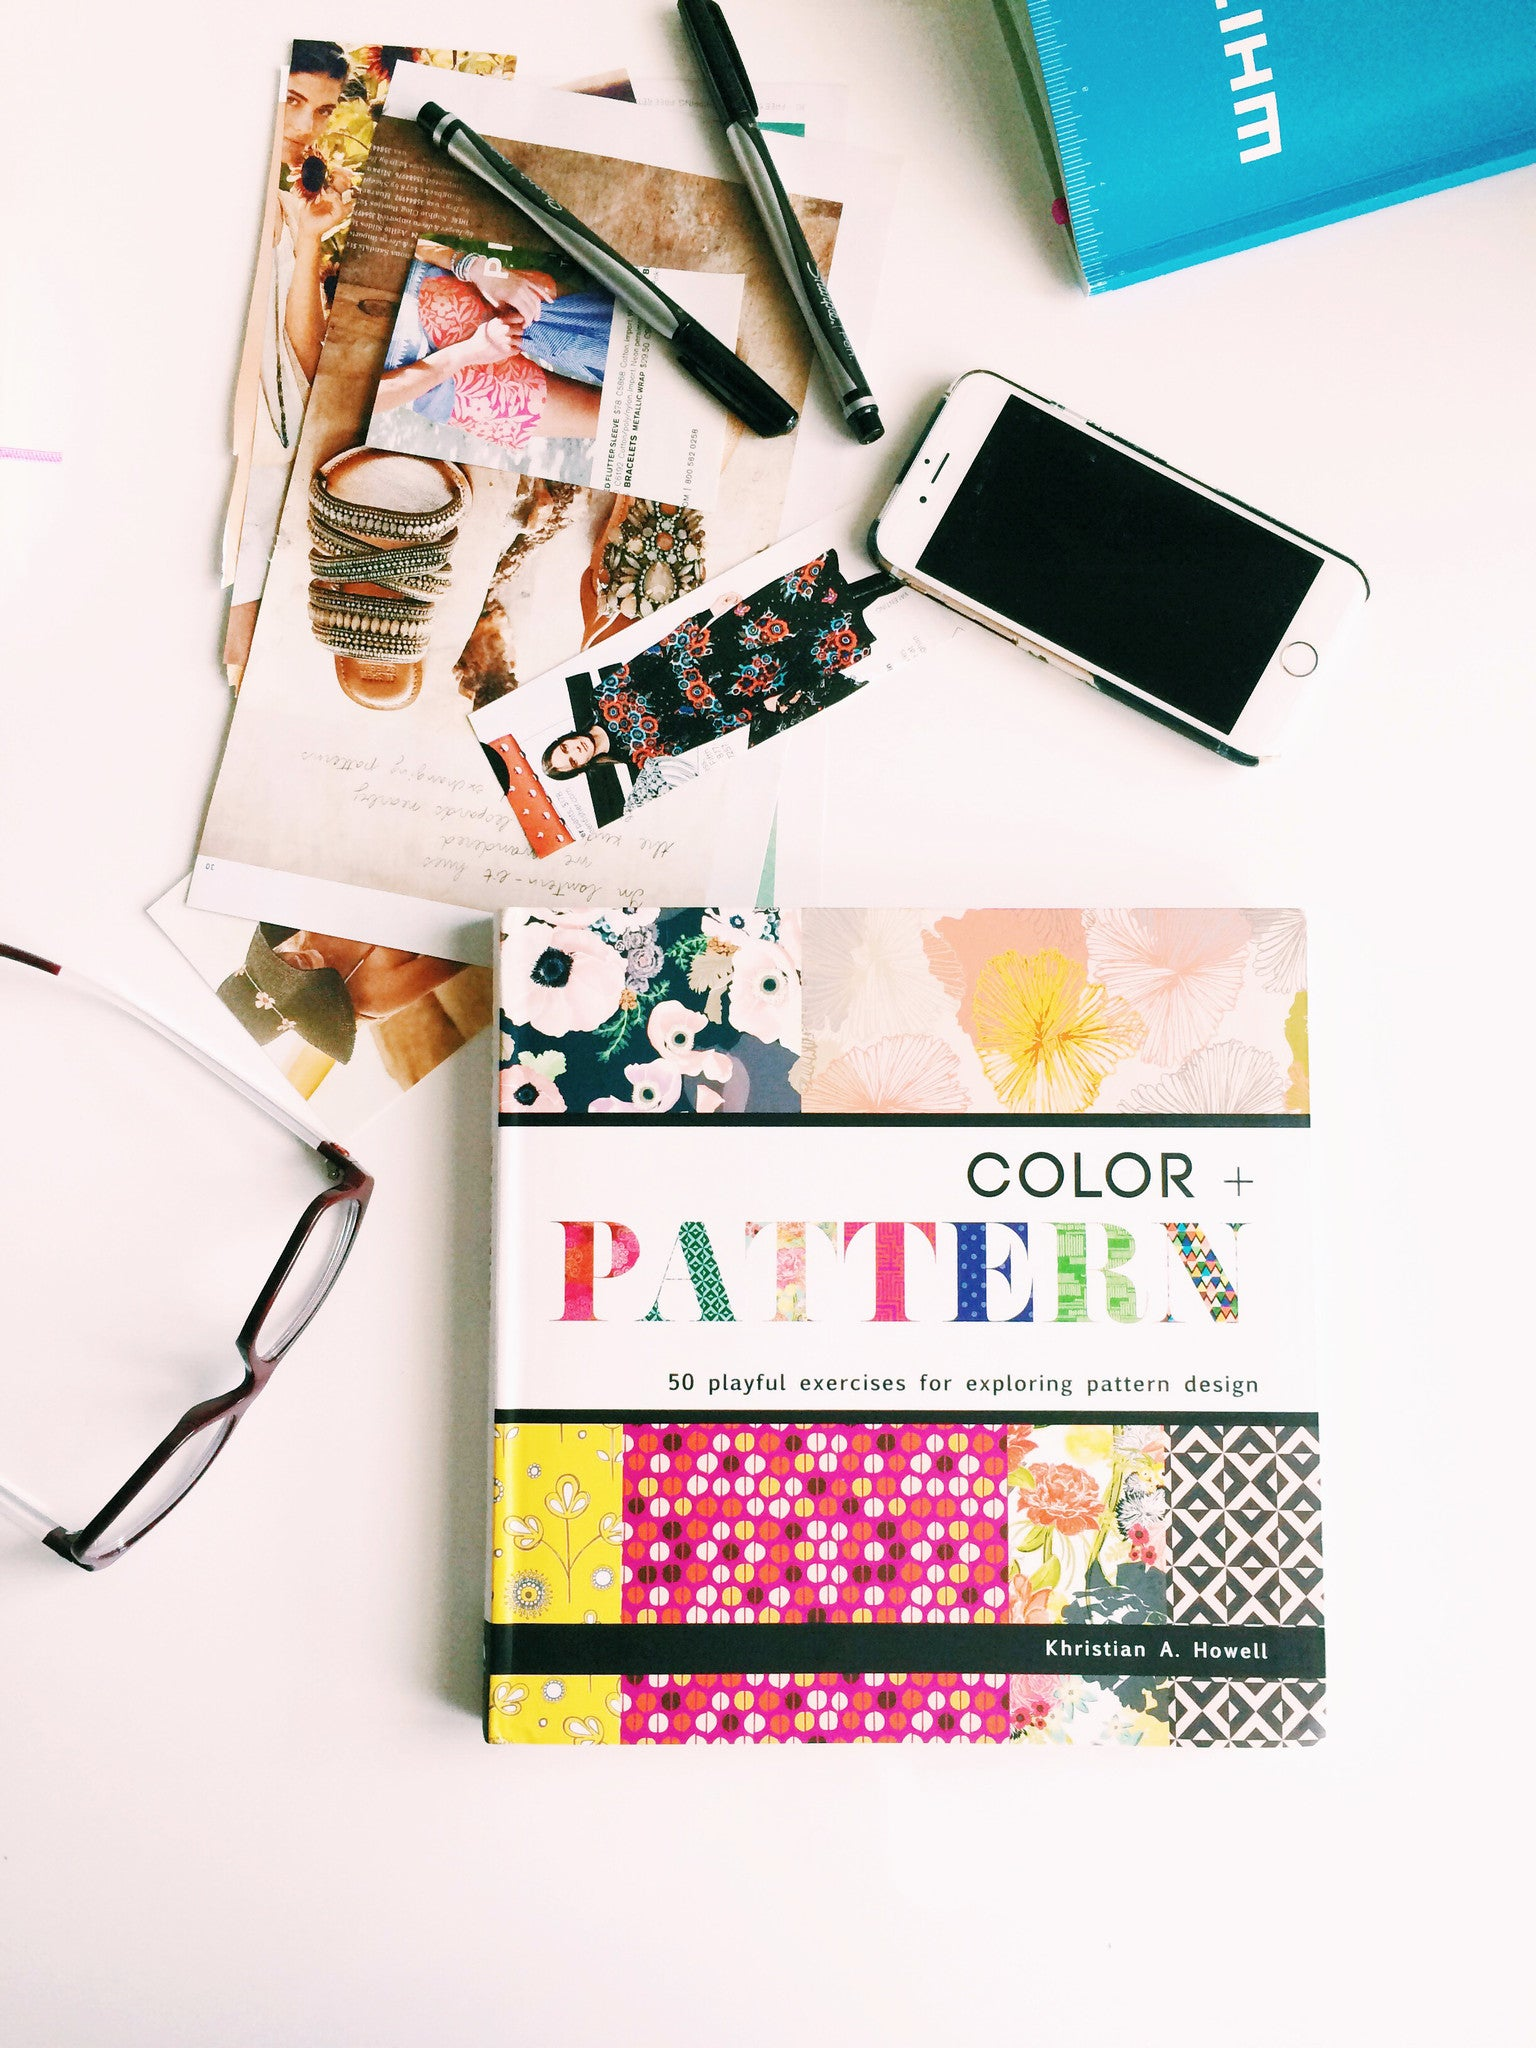 Color + Pattern: 50 Playful Exercises for Exploring Pattern Design | Khristian A. Howell modern home decor online, original pattern designs, exclusive home decor designs